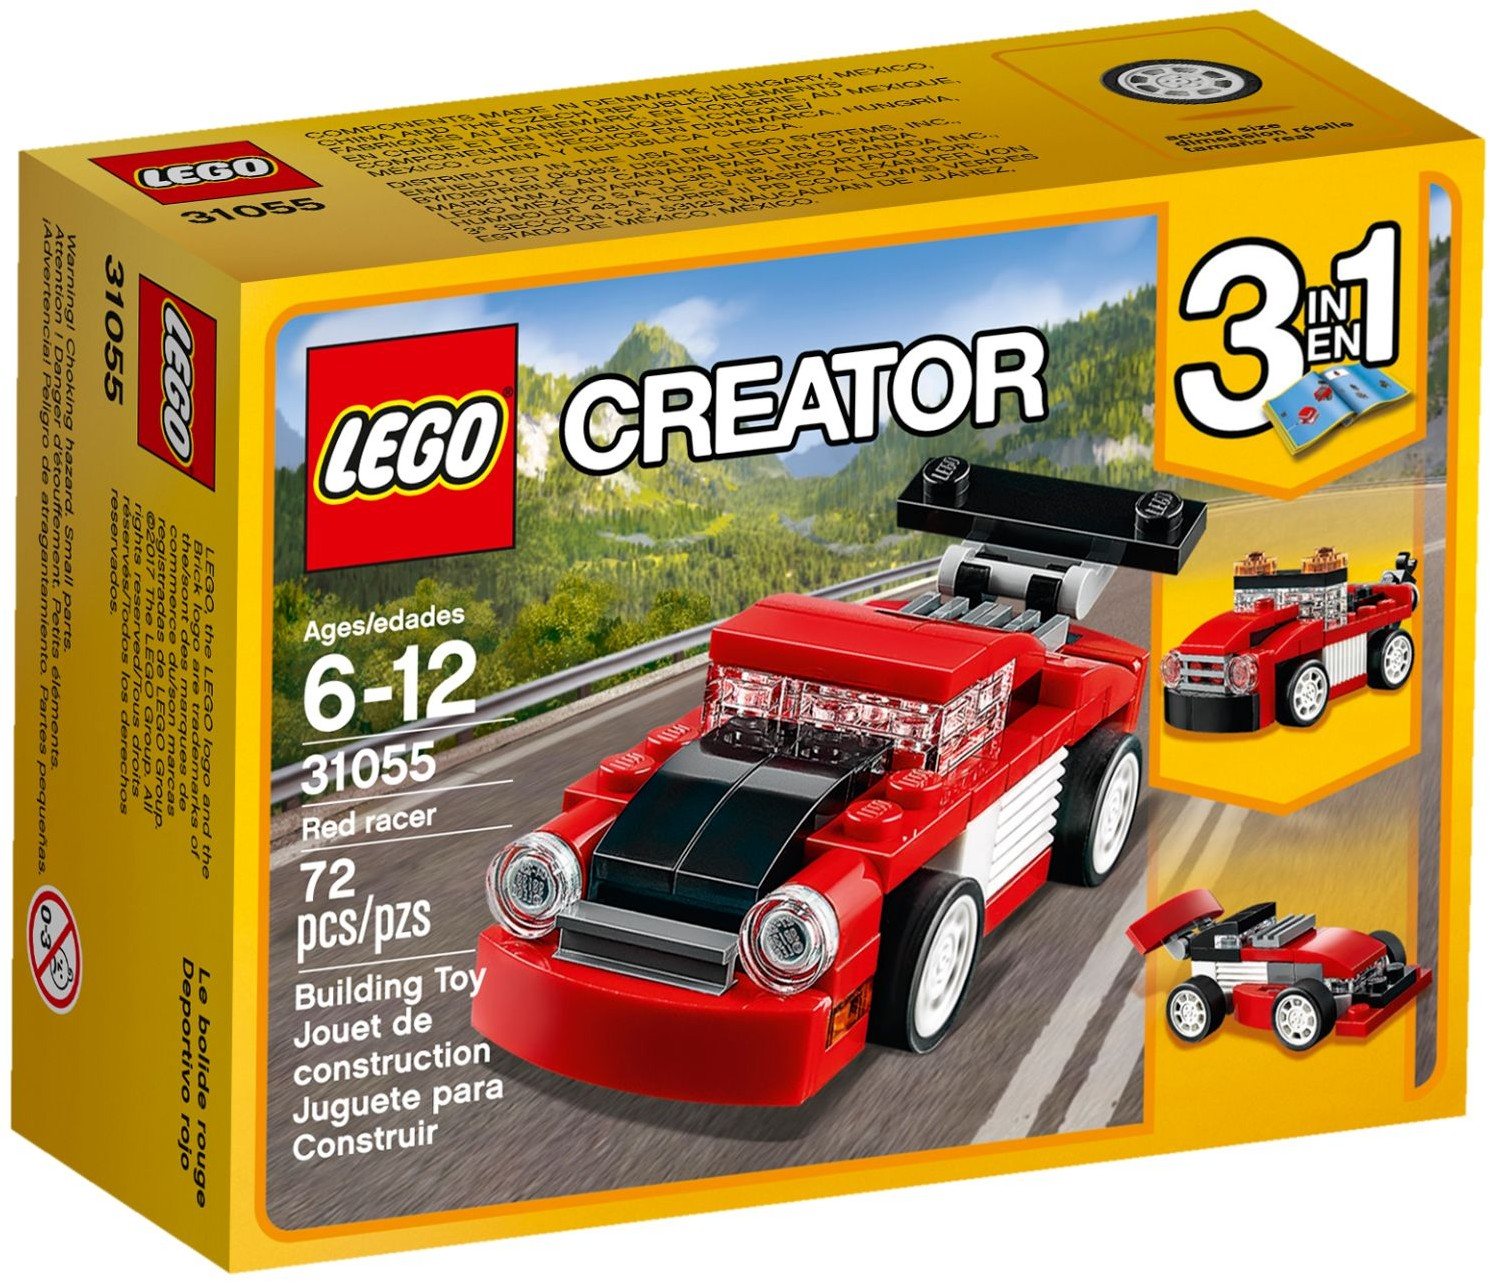 LEGO Creator Sets: 31055 Red Racer NEW